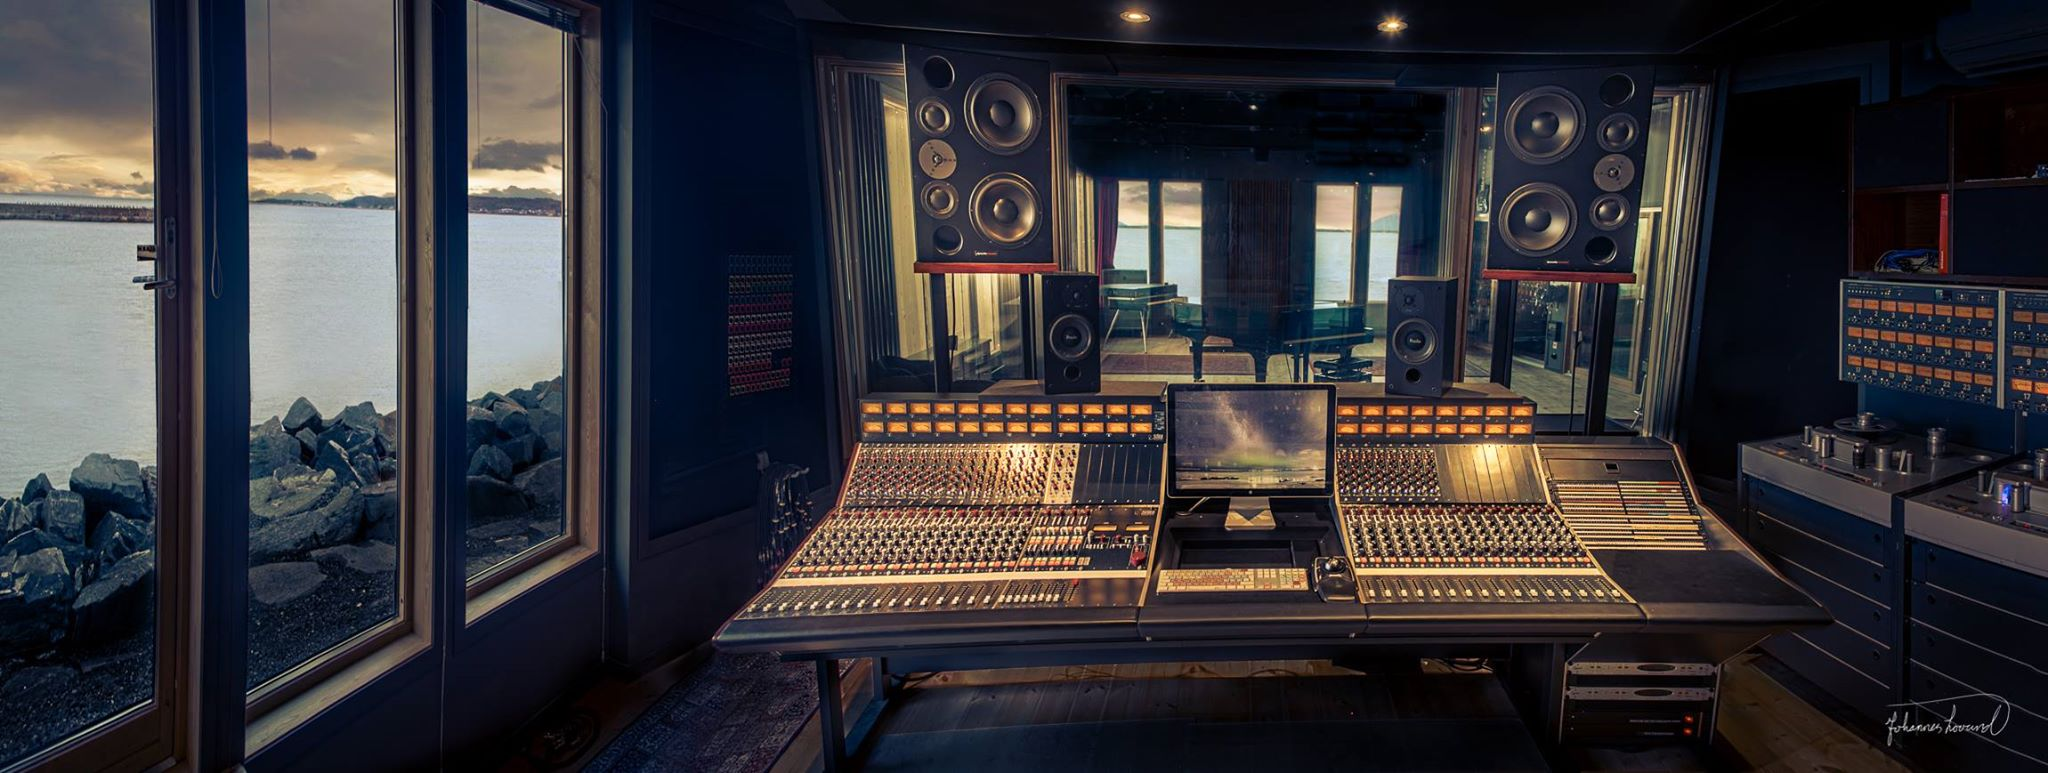 Excellent Striking A Chord Recording Studios That Sync Design And Function Largest Home Design Picture Inspirations Pitcheantrous